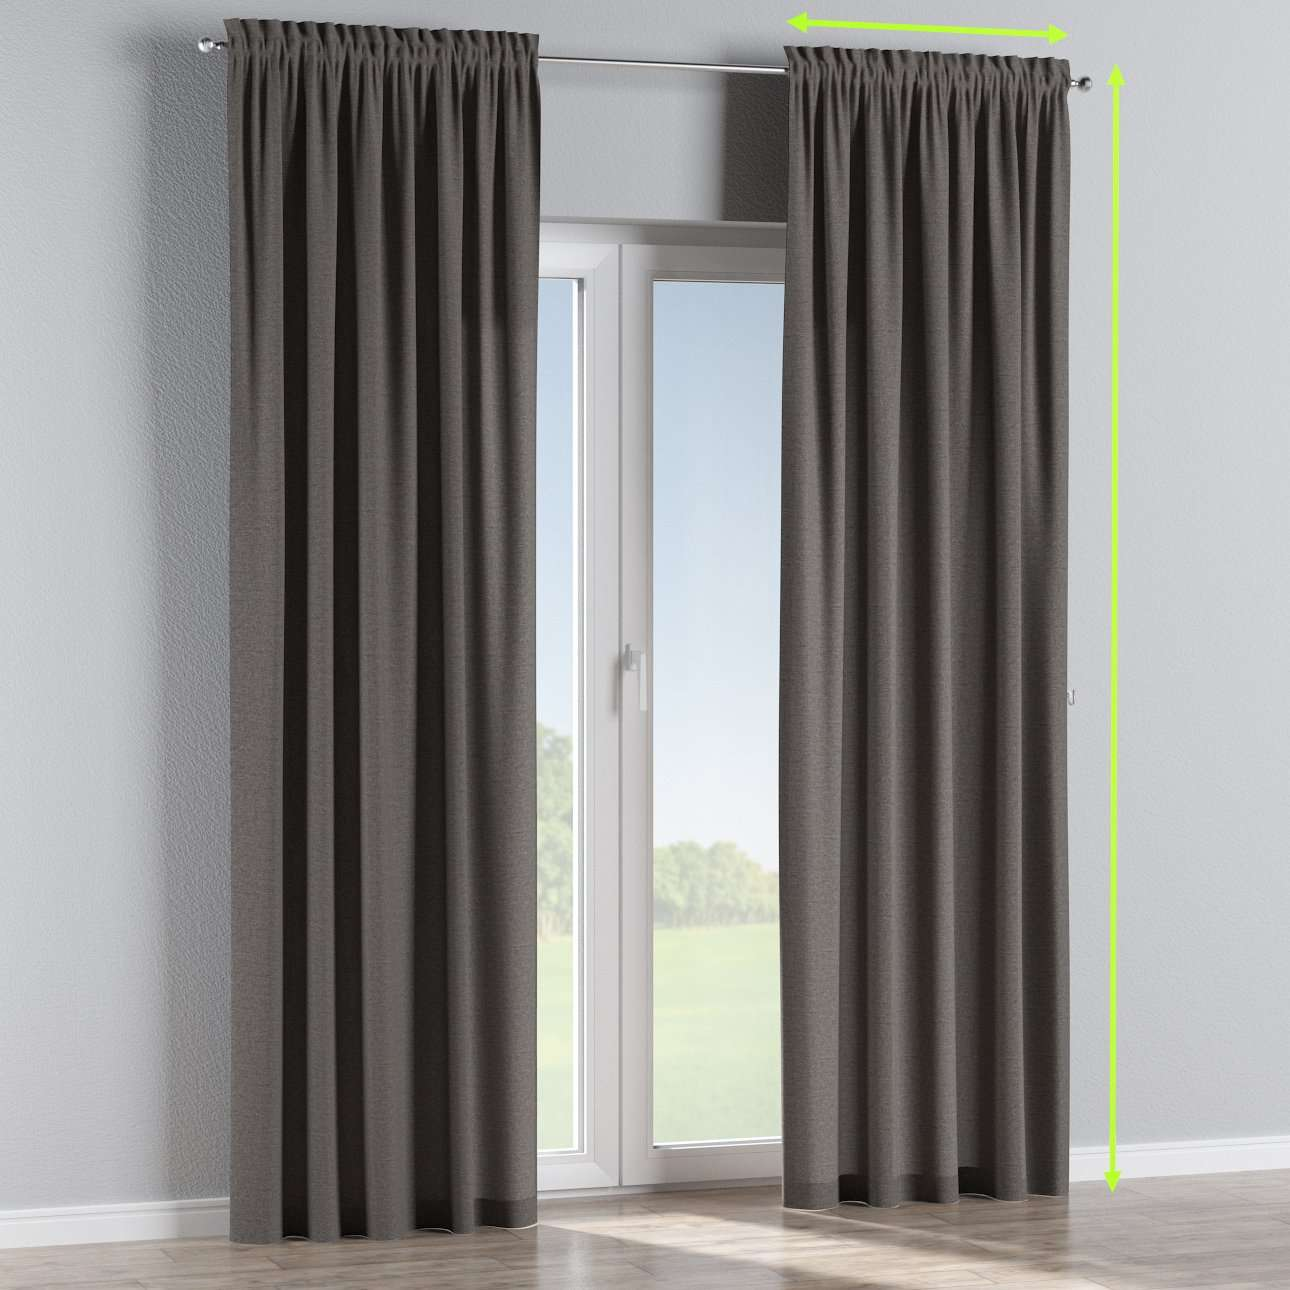 Slot and frill lined curtains in collection Edinburgh , fabric: 115-77